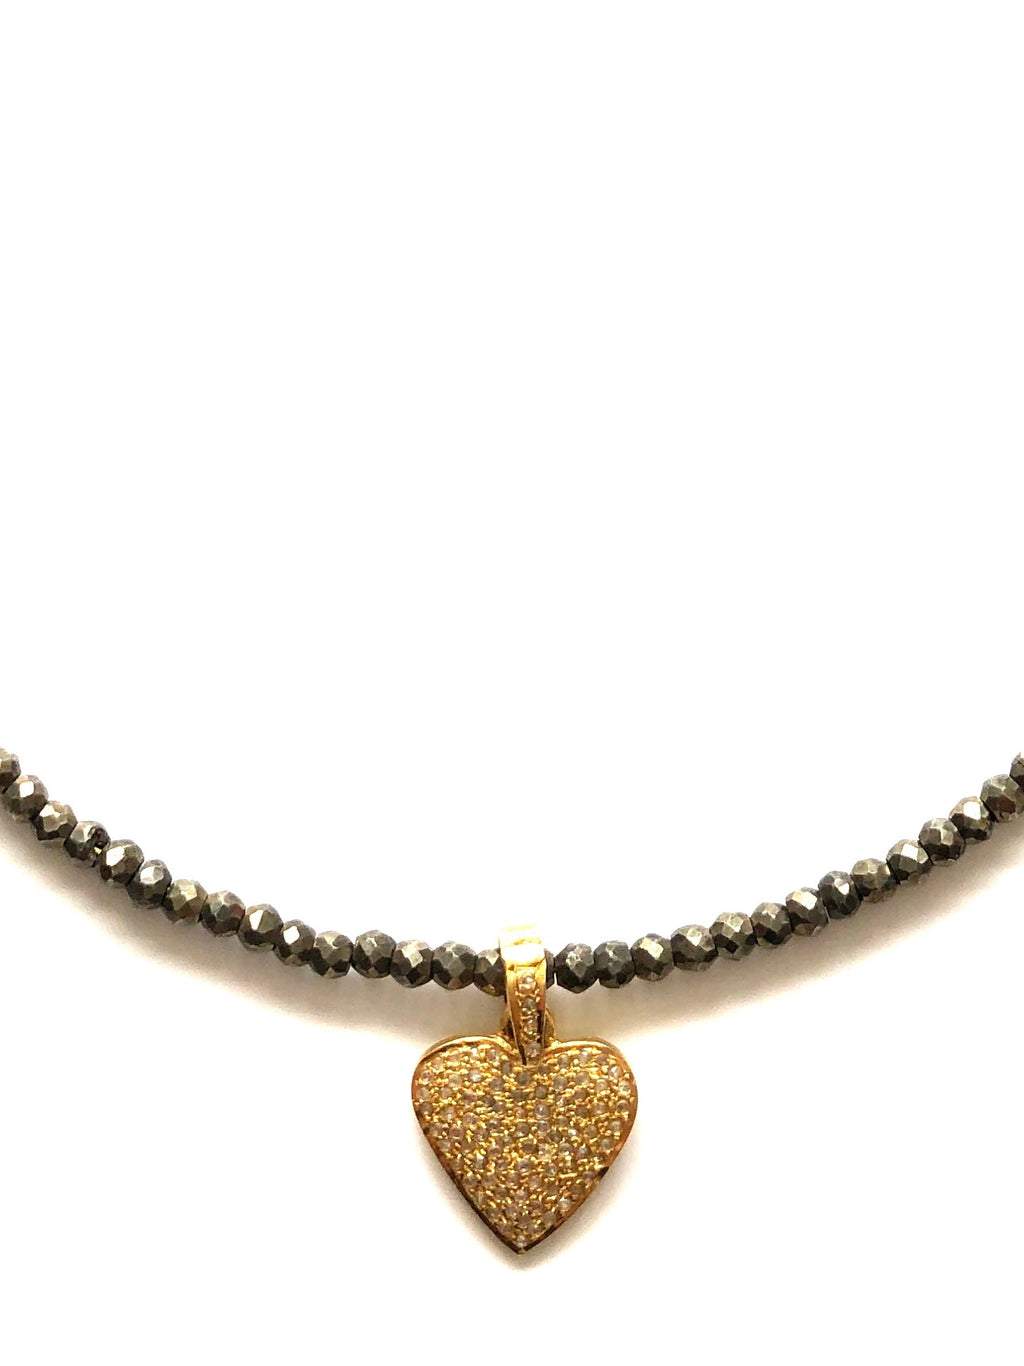 Pyrite and Pave Heart Charm Necklace